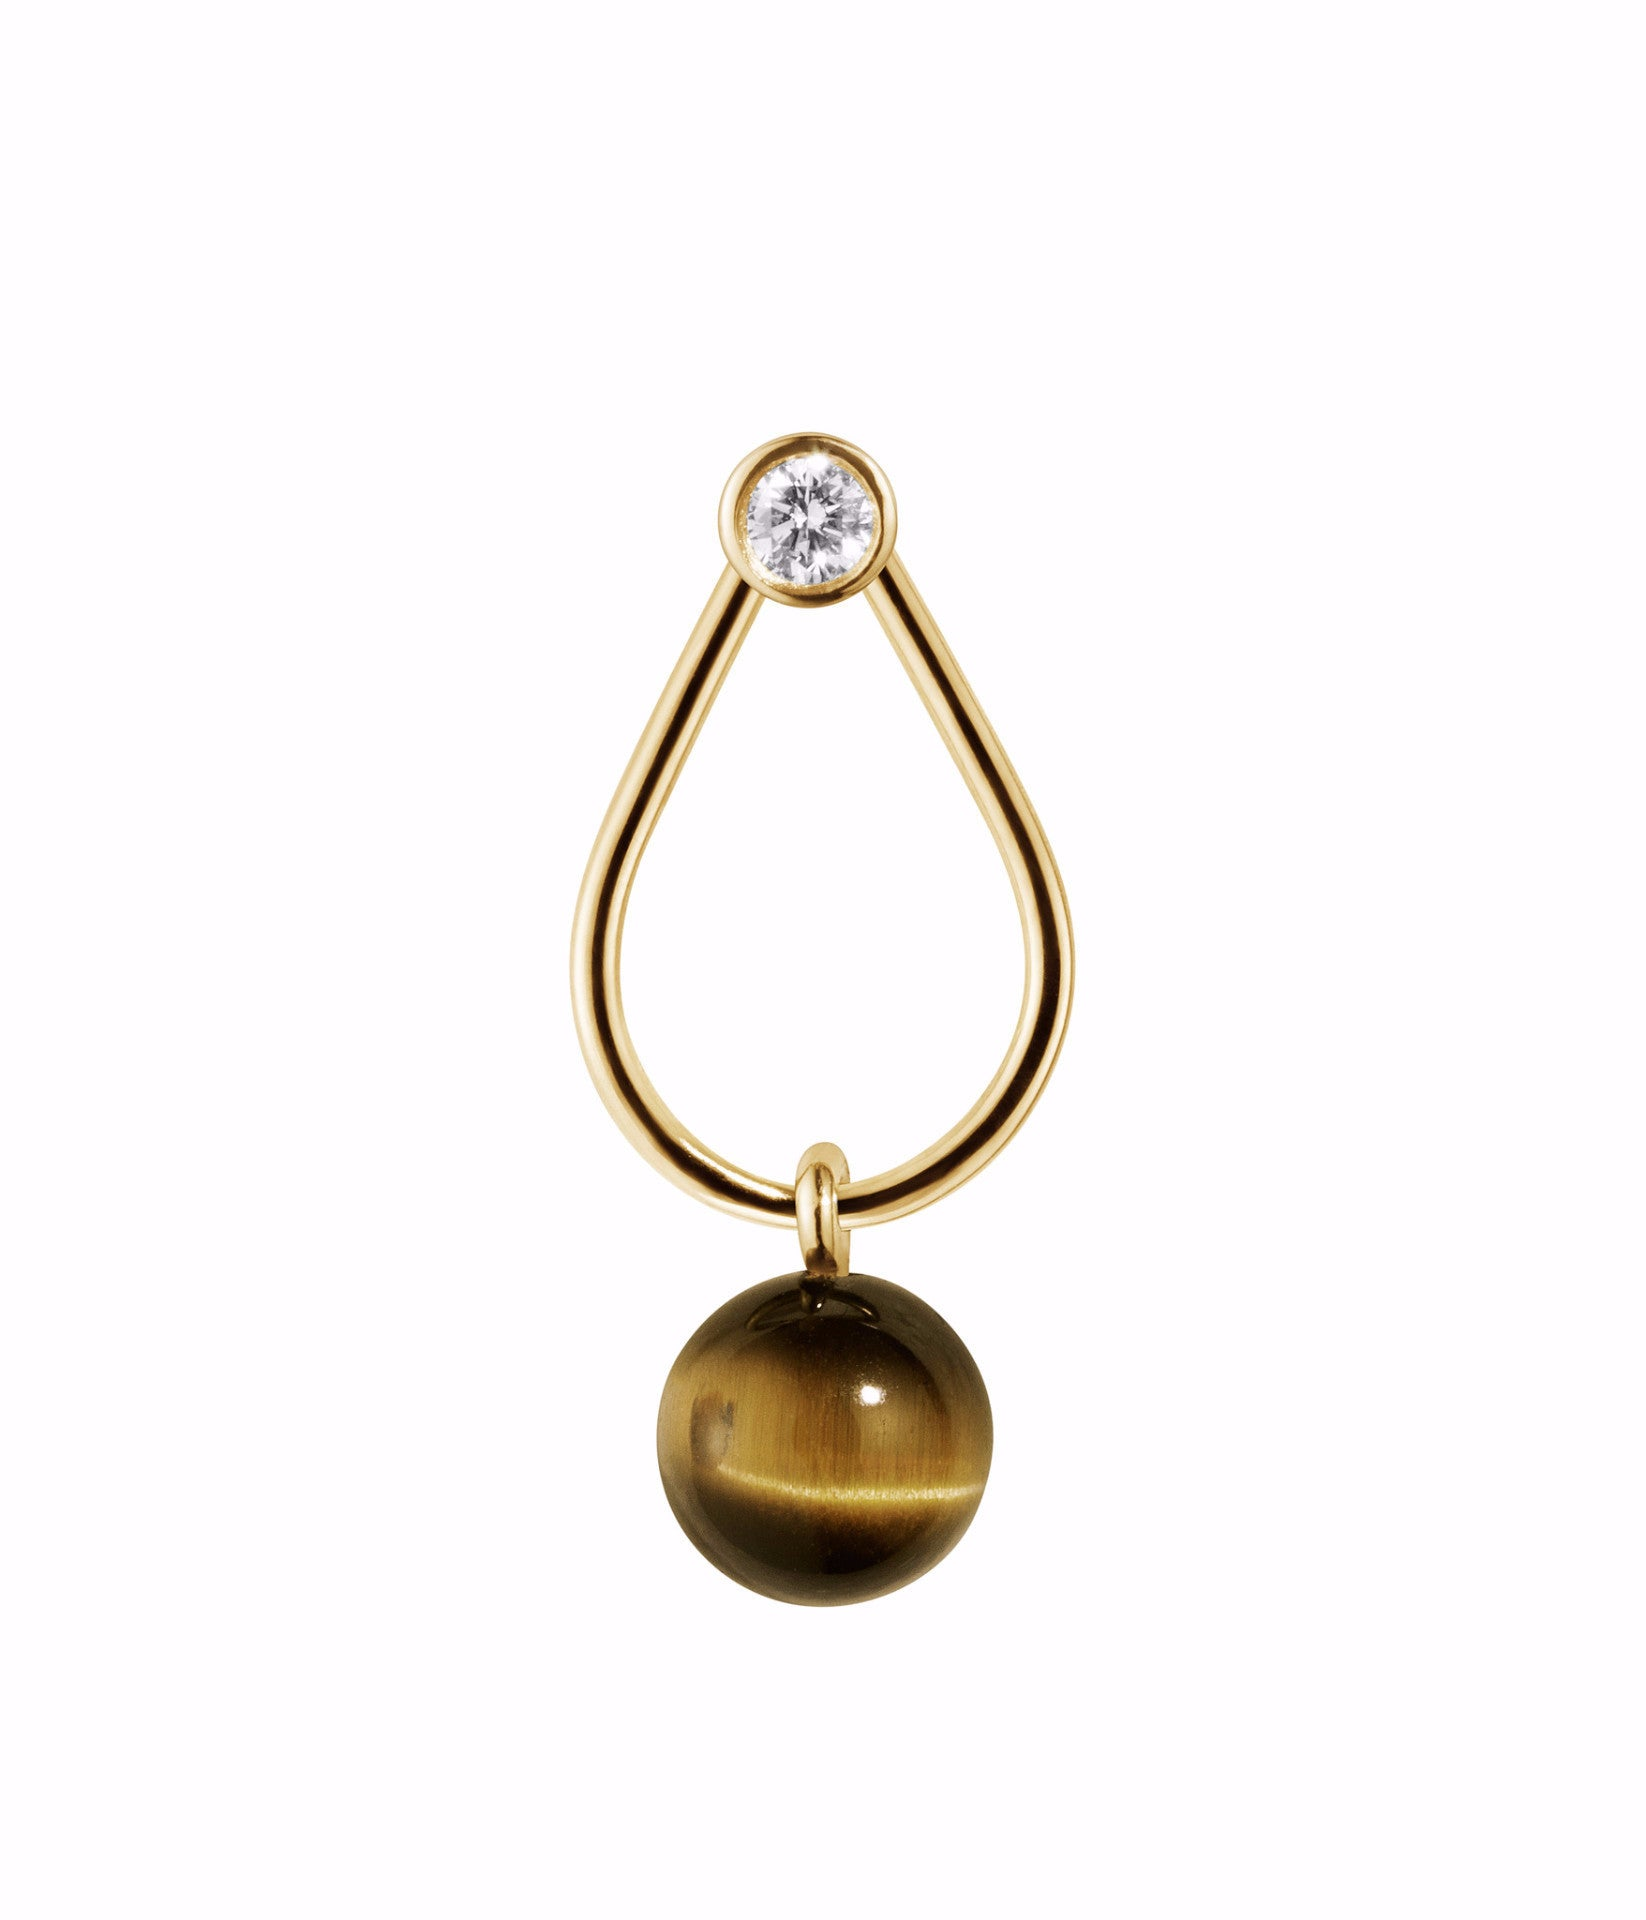 TIGER EMBRACE · EARRING · 18KT. GOLD W. DIAMOND AND TIGER'S EYE